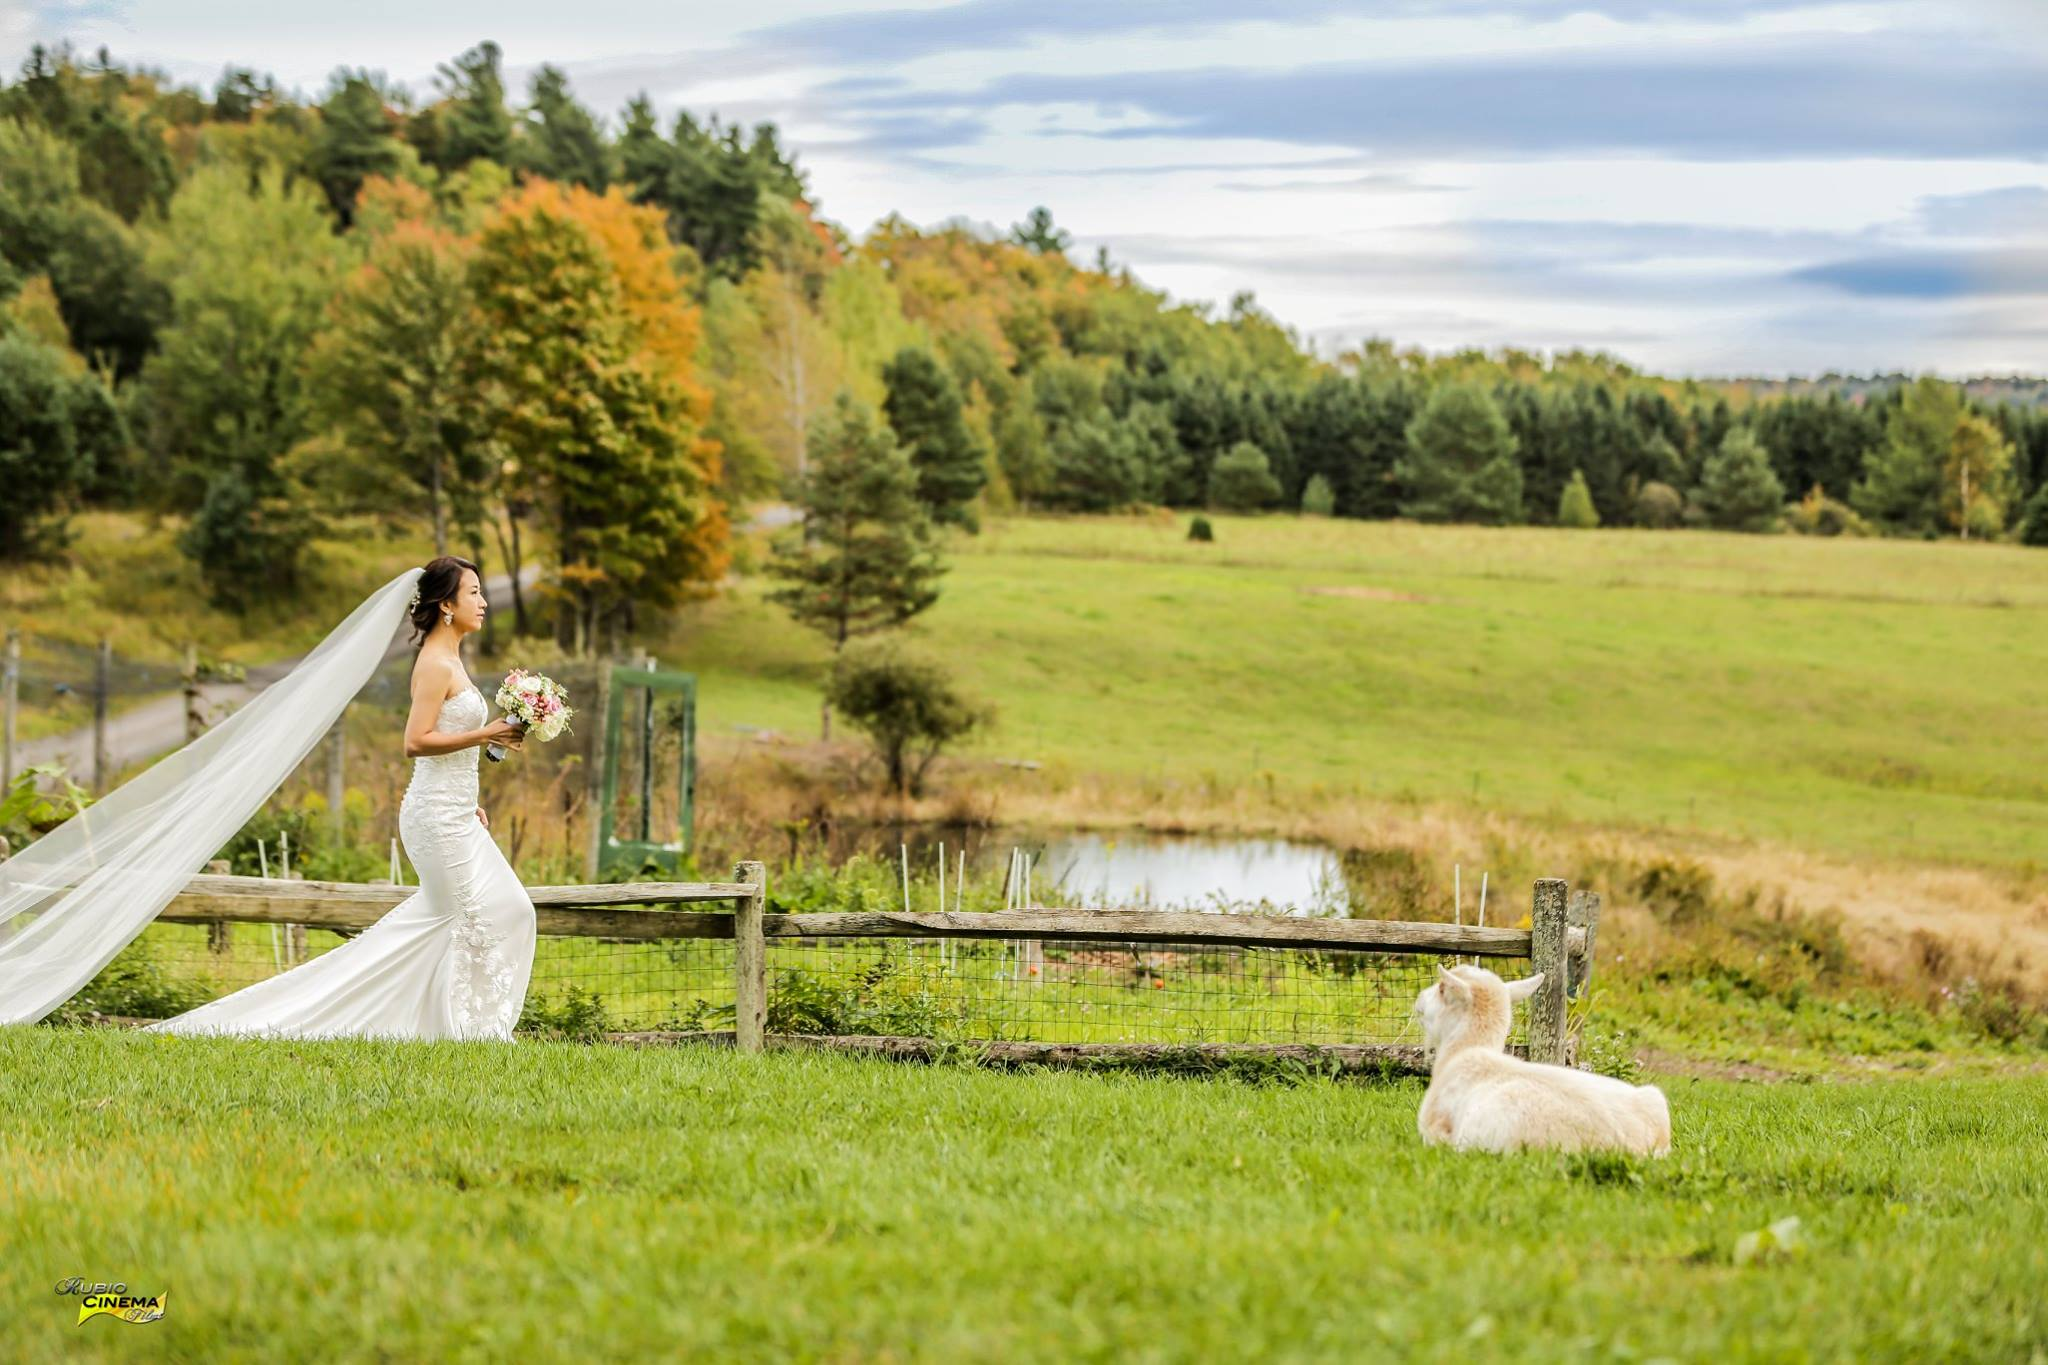 Alice and Olivier — October 2018  Photography by Rodrick and Cisi Rubio  http://rubiocinema.com